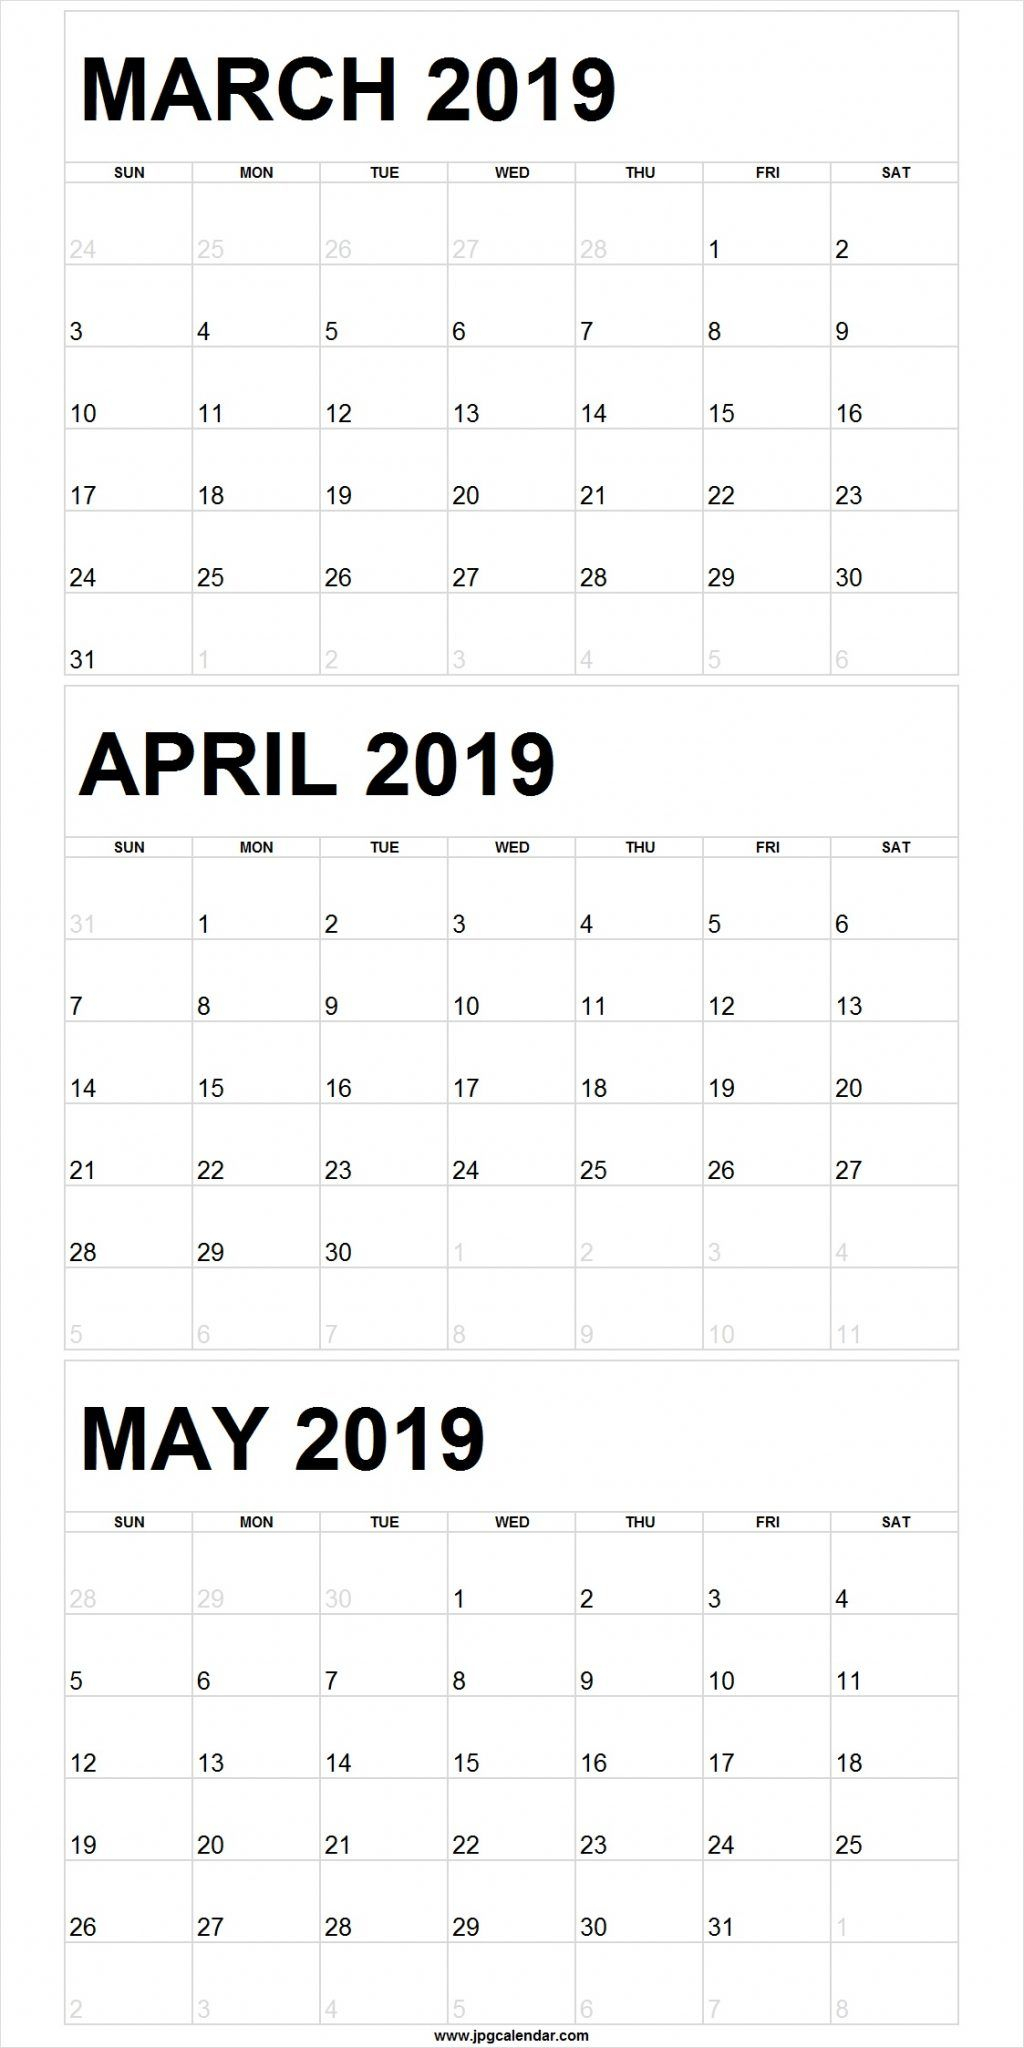 Blank March To May 2019 Calendar Printable | 250+ Free Monthly with regard to Free Printable 3 Month Calendar Template